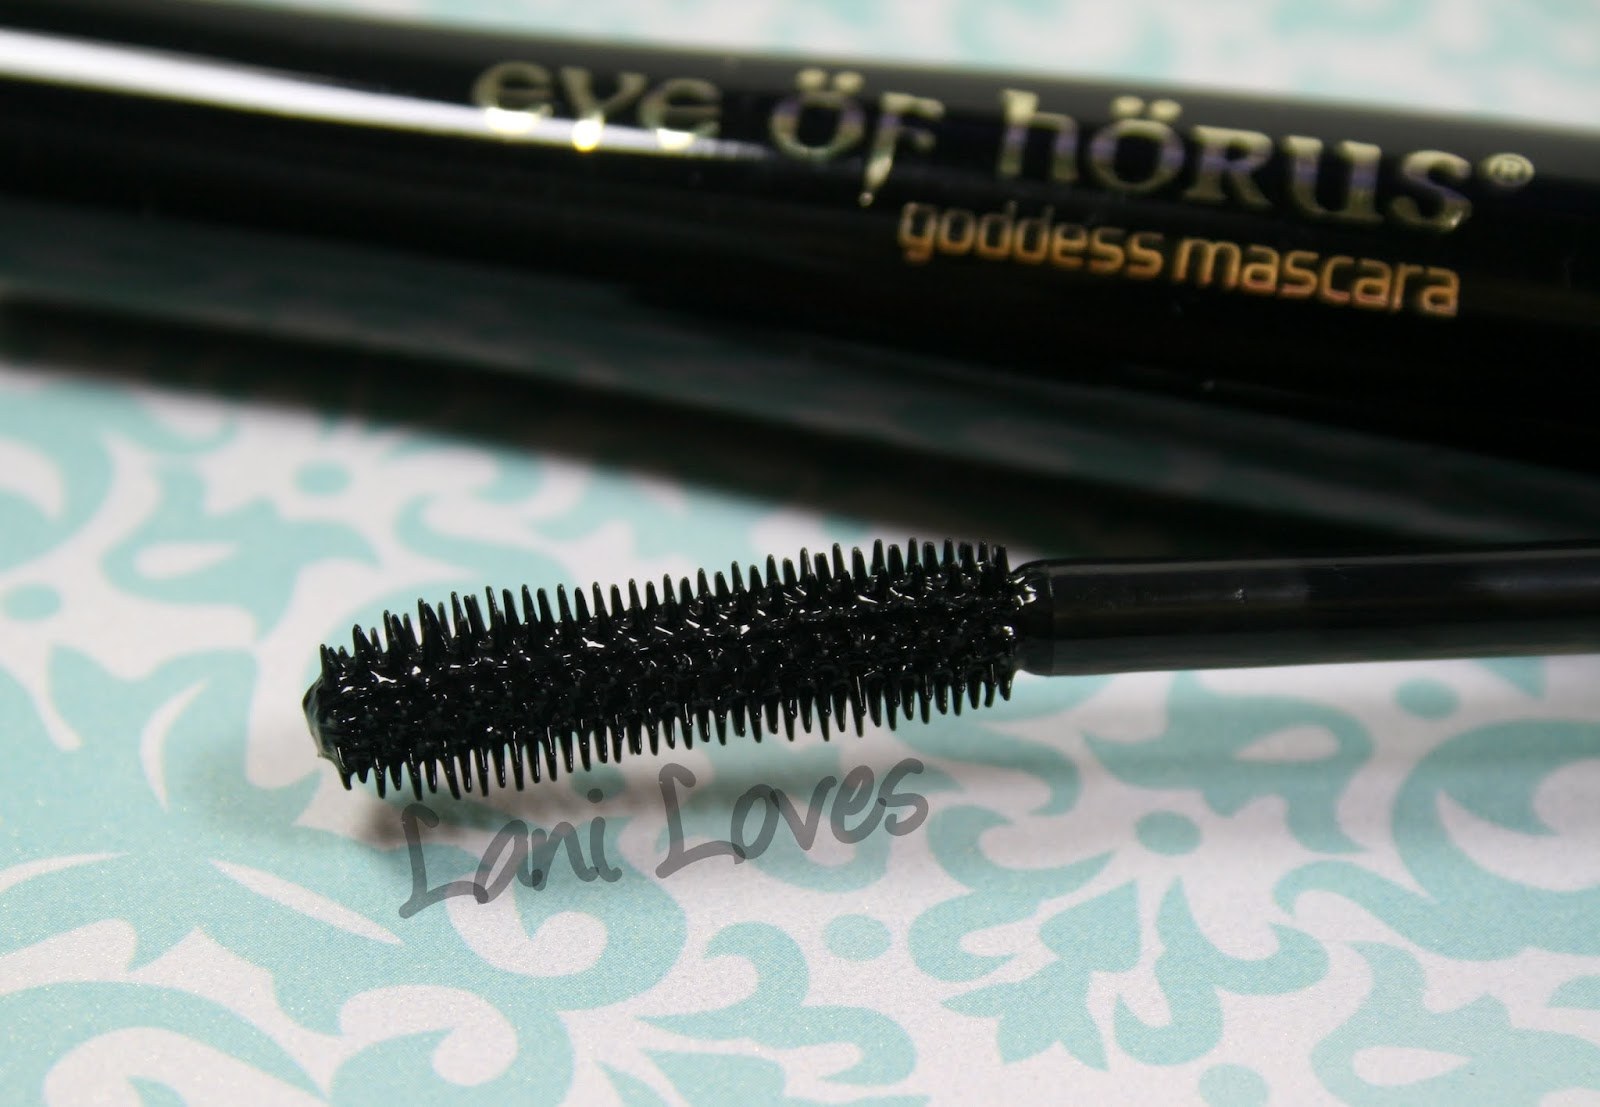 Eye of Horus Goddess Mascara